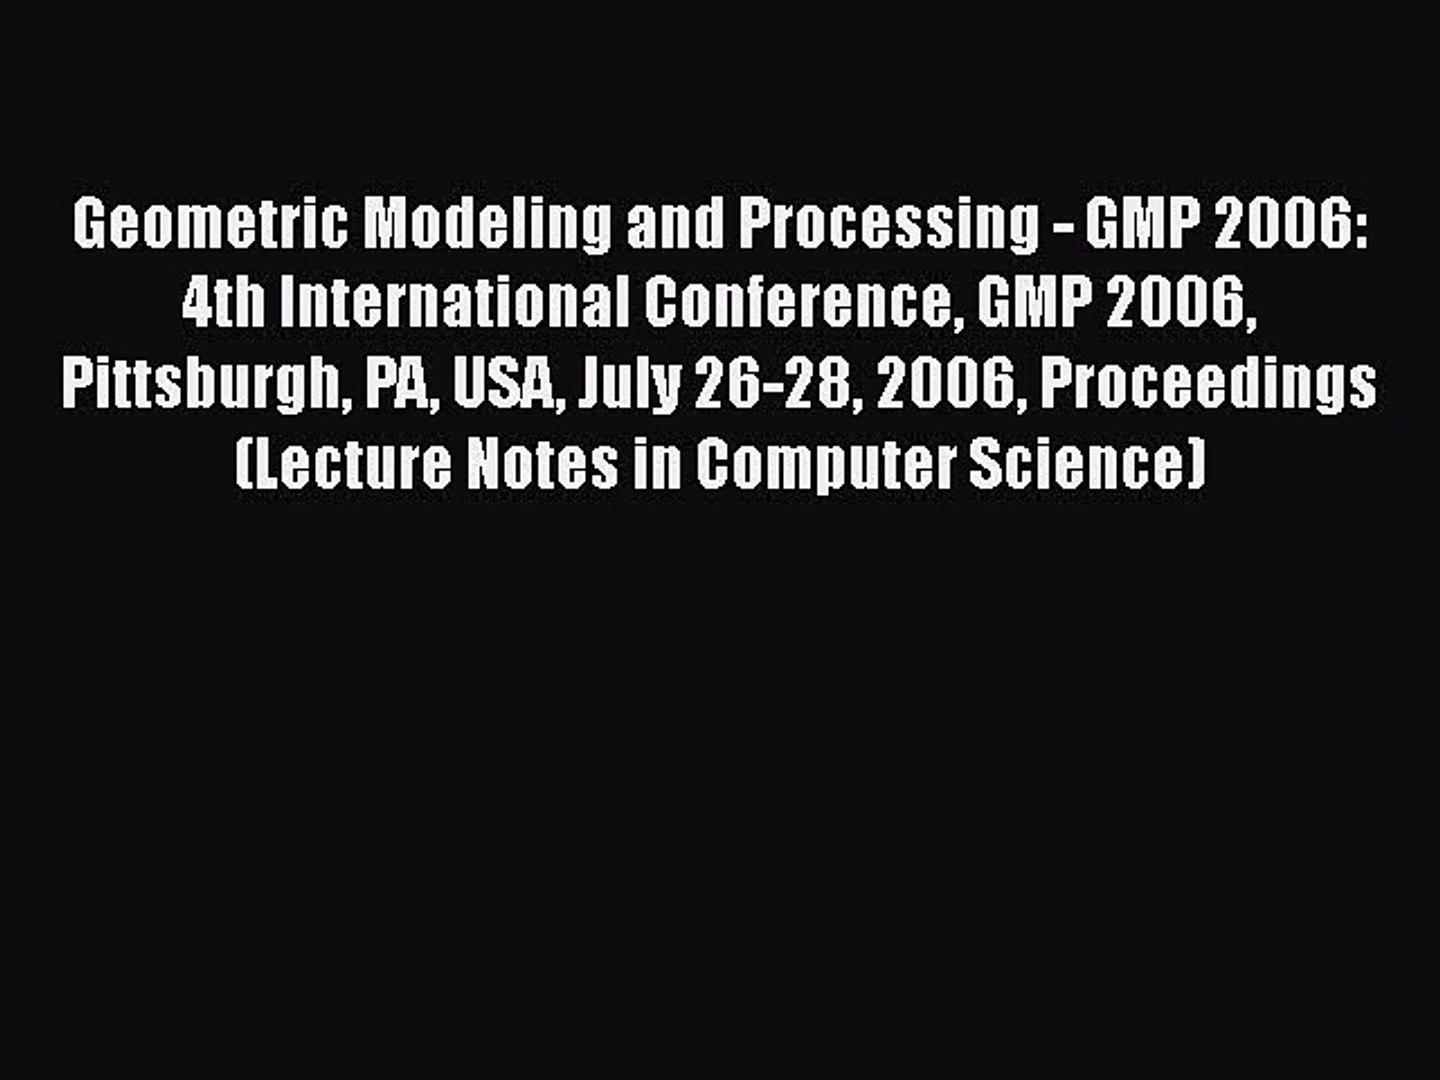 [PDF] Geometric Modeling and Processing - GMP 2006: 4th International Conference GMP 2006 Pittsburgh